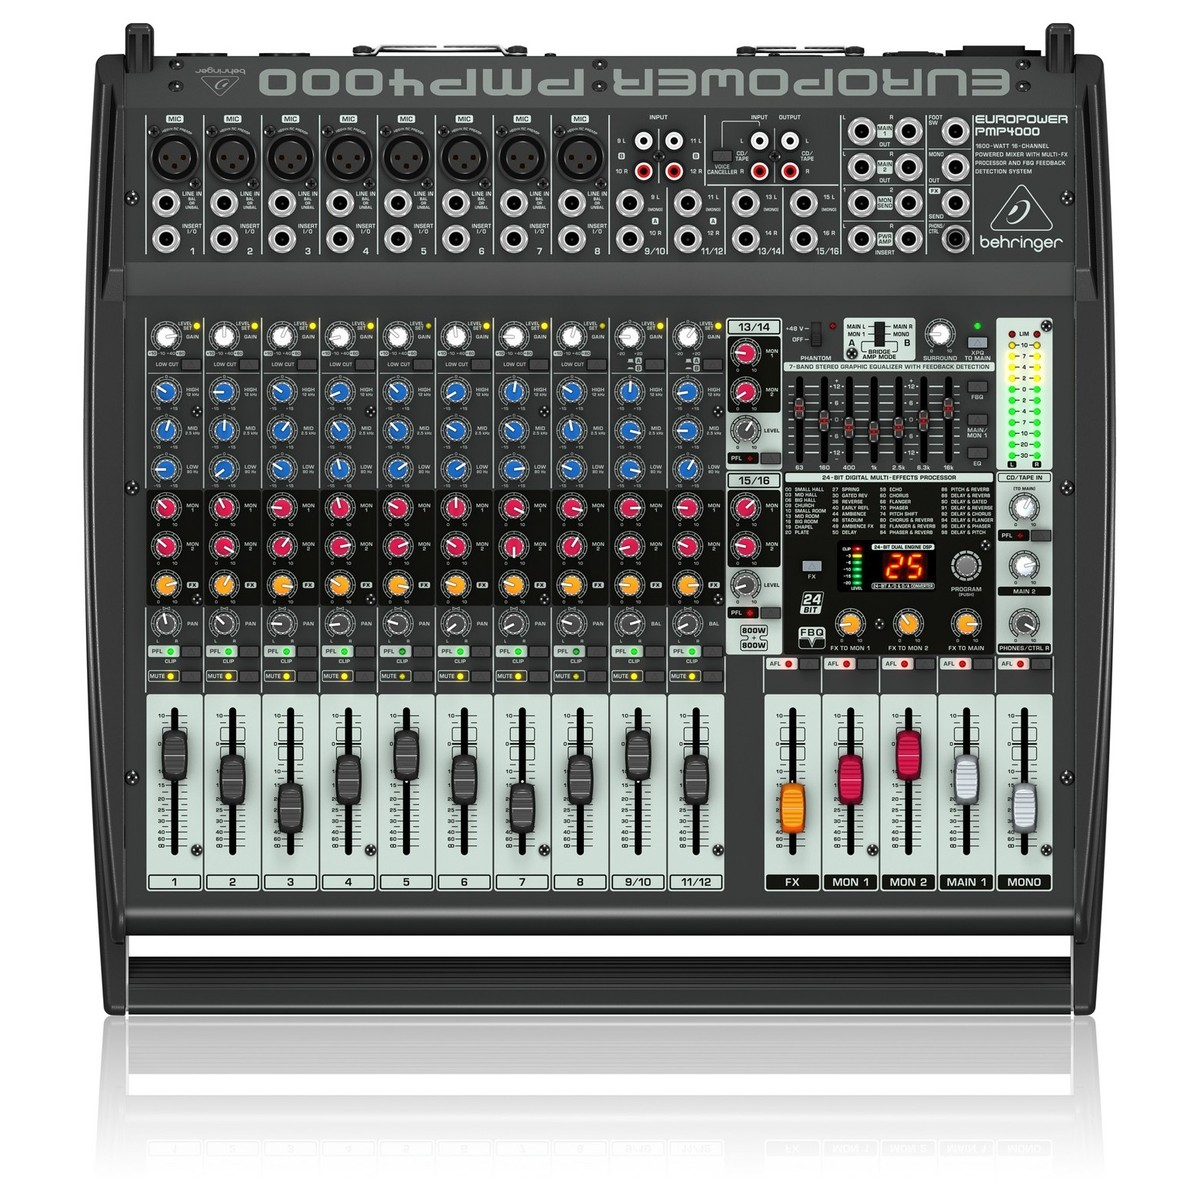 Behringer pmp4000 europower table de mixage gear4music - Table de mixage behringer ...